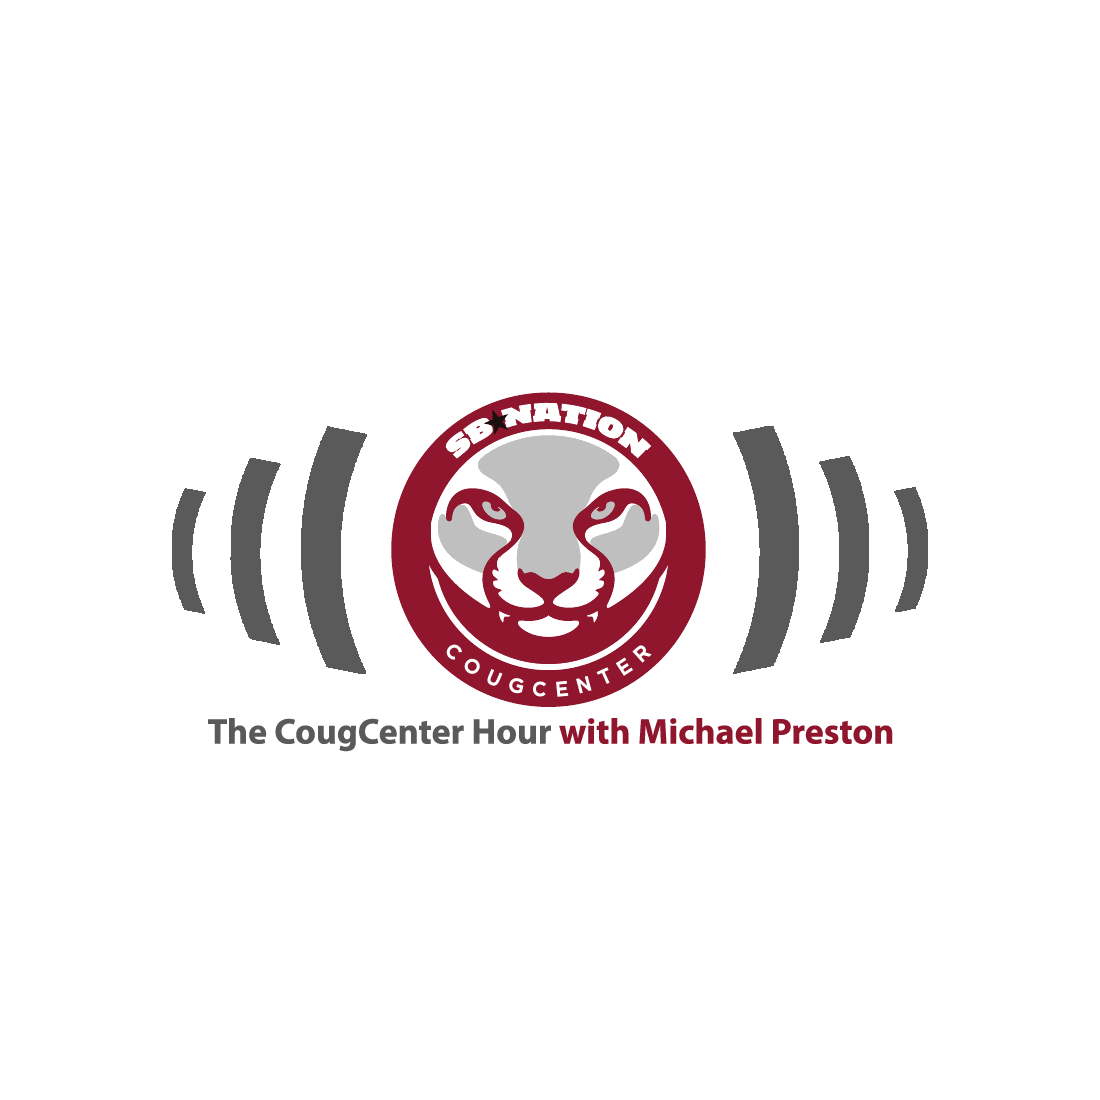 The CougCenter Hour